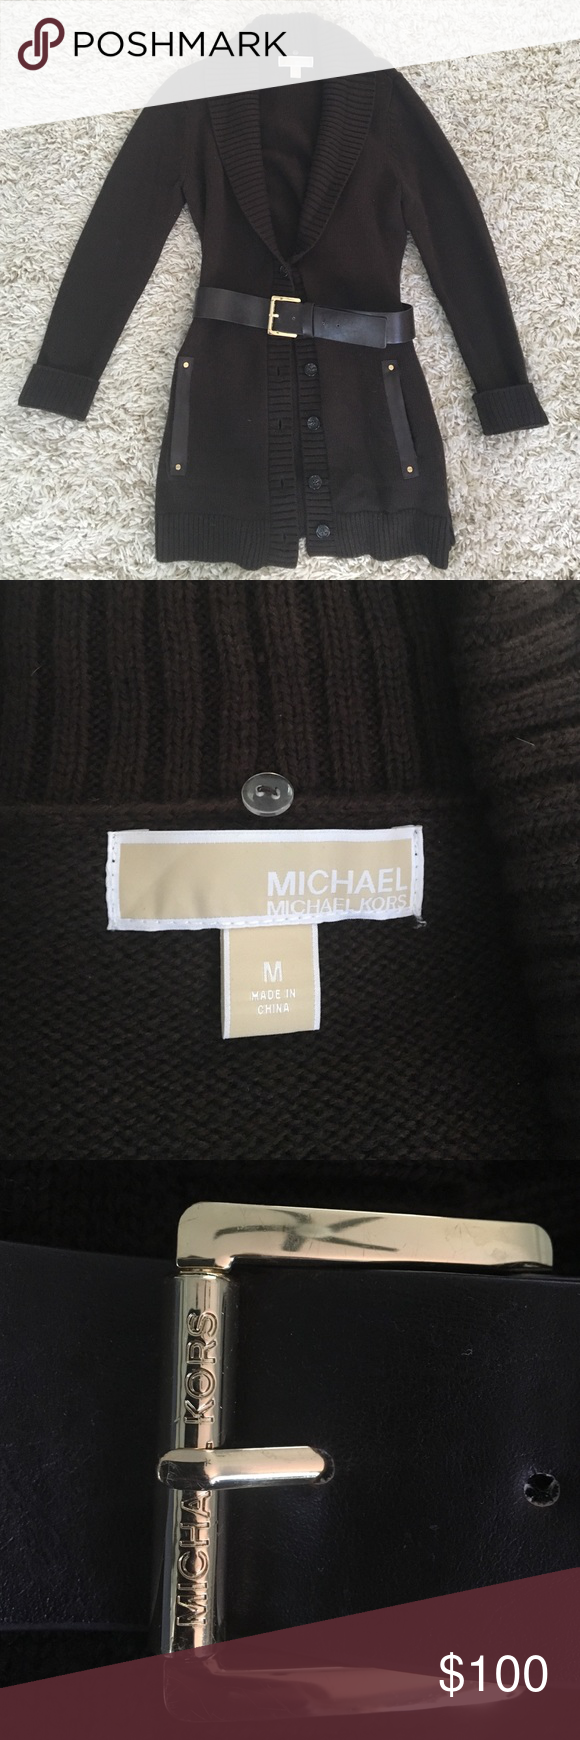 MK cardigan sweater Never worn! Cardigan with detachable belt Michael Kors Sweaters Cardigans